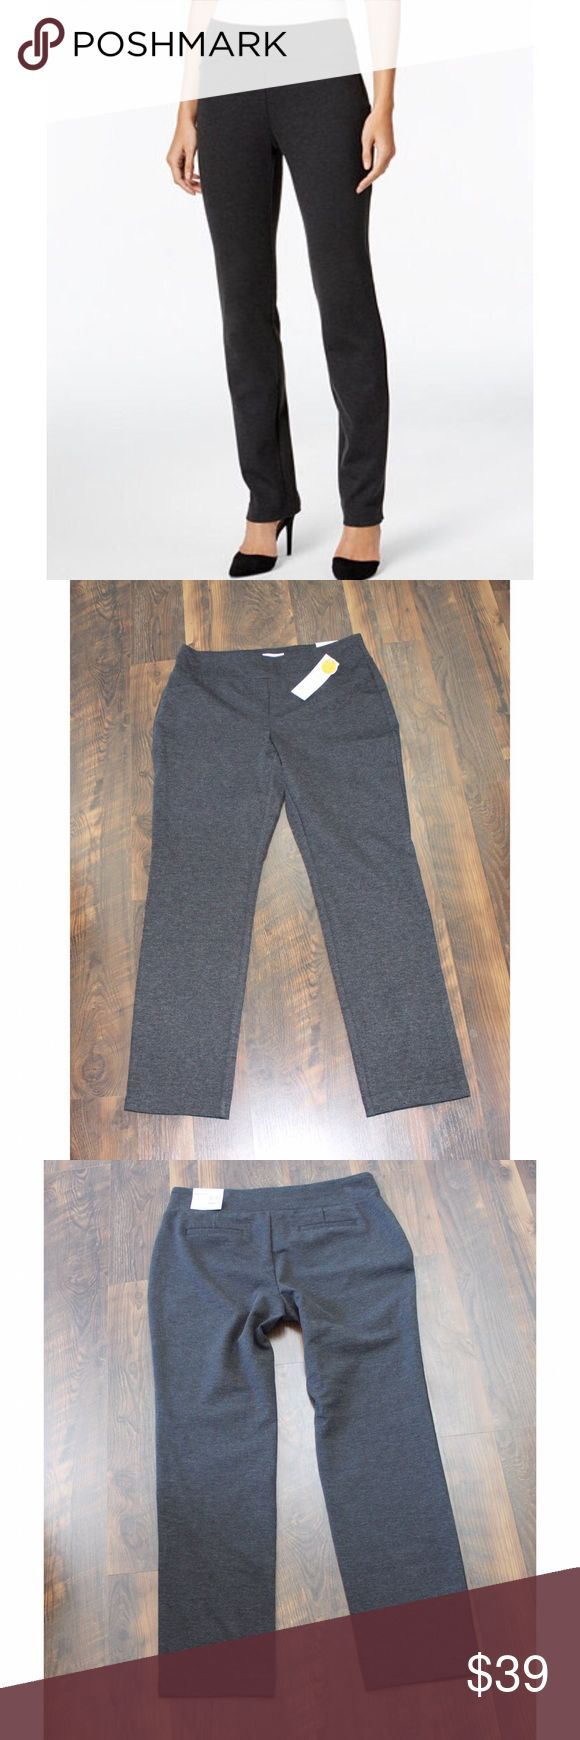 "Grey Cambridge Slim Pants Brand new heather grey Cambridge Slim Pant by Charter Club. They have an elastic waistband and faux pockets for a slimming look.   Size 12 Inseam 30"" Waist Laying Flat 17"" Rise 11"" Leg Opening 6.5""  Item Number: L1N75BF Charter Club Pants Straight Leg"